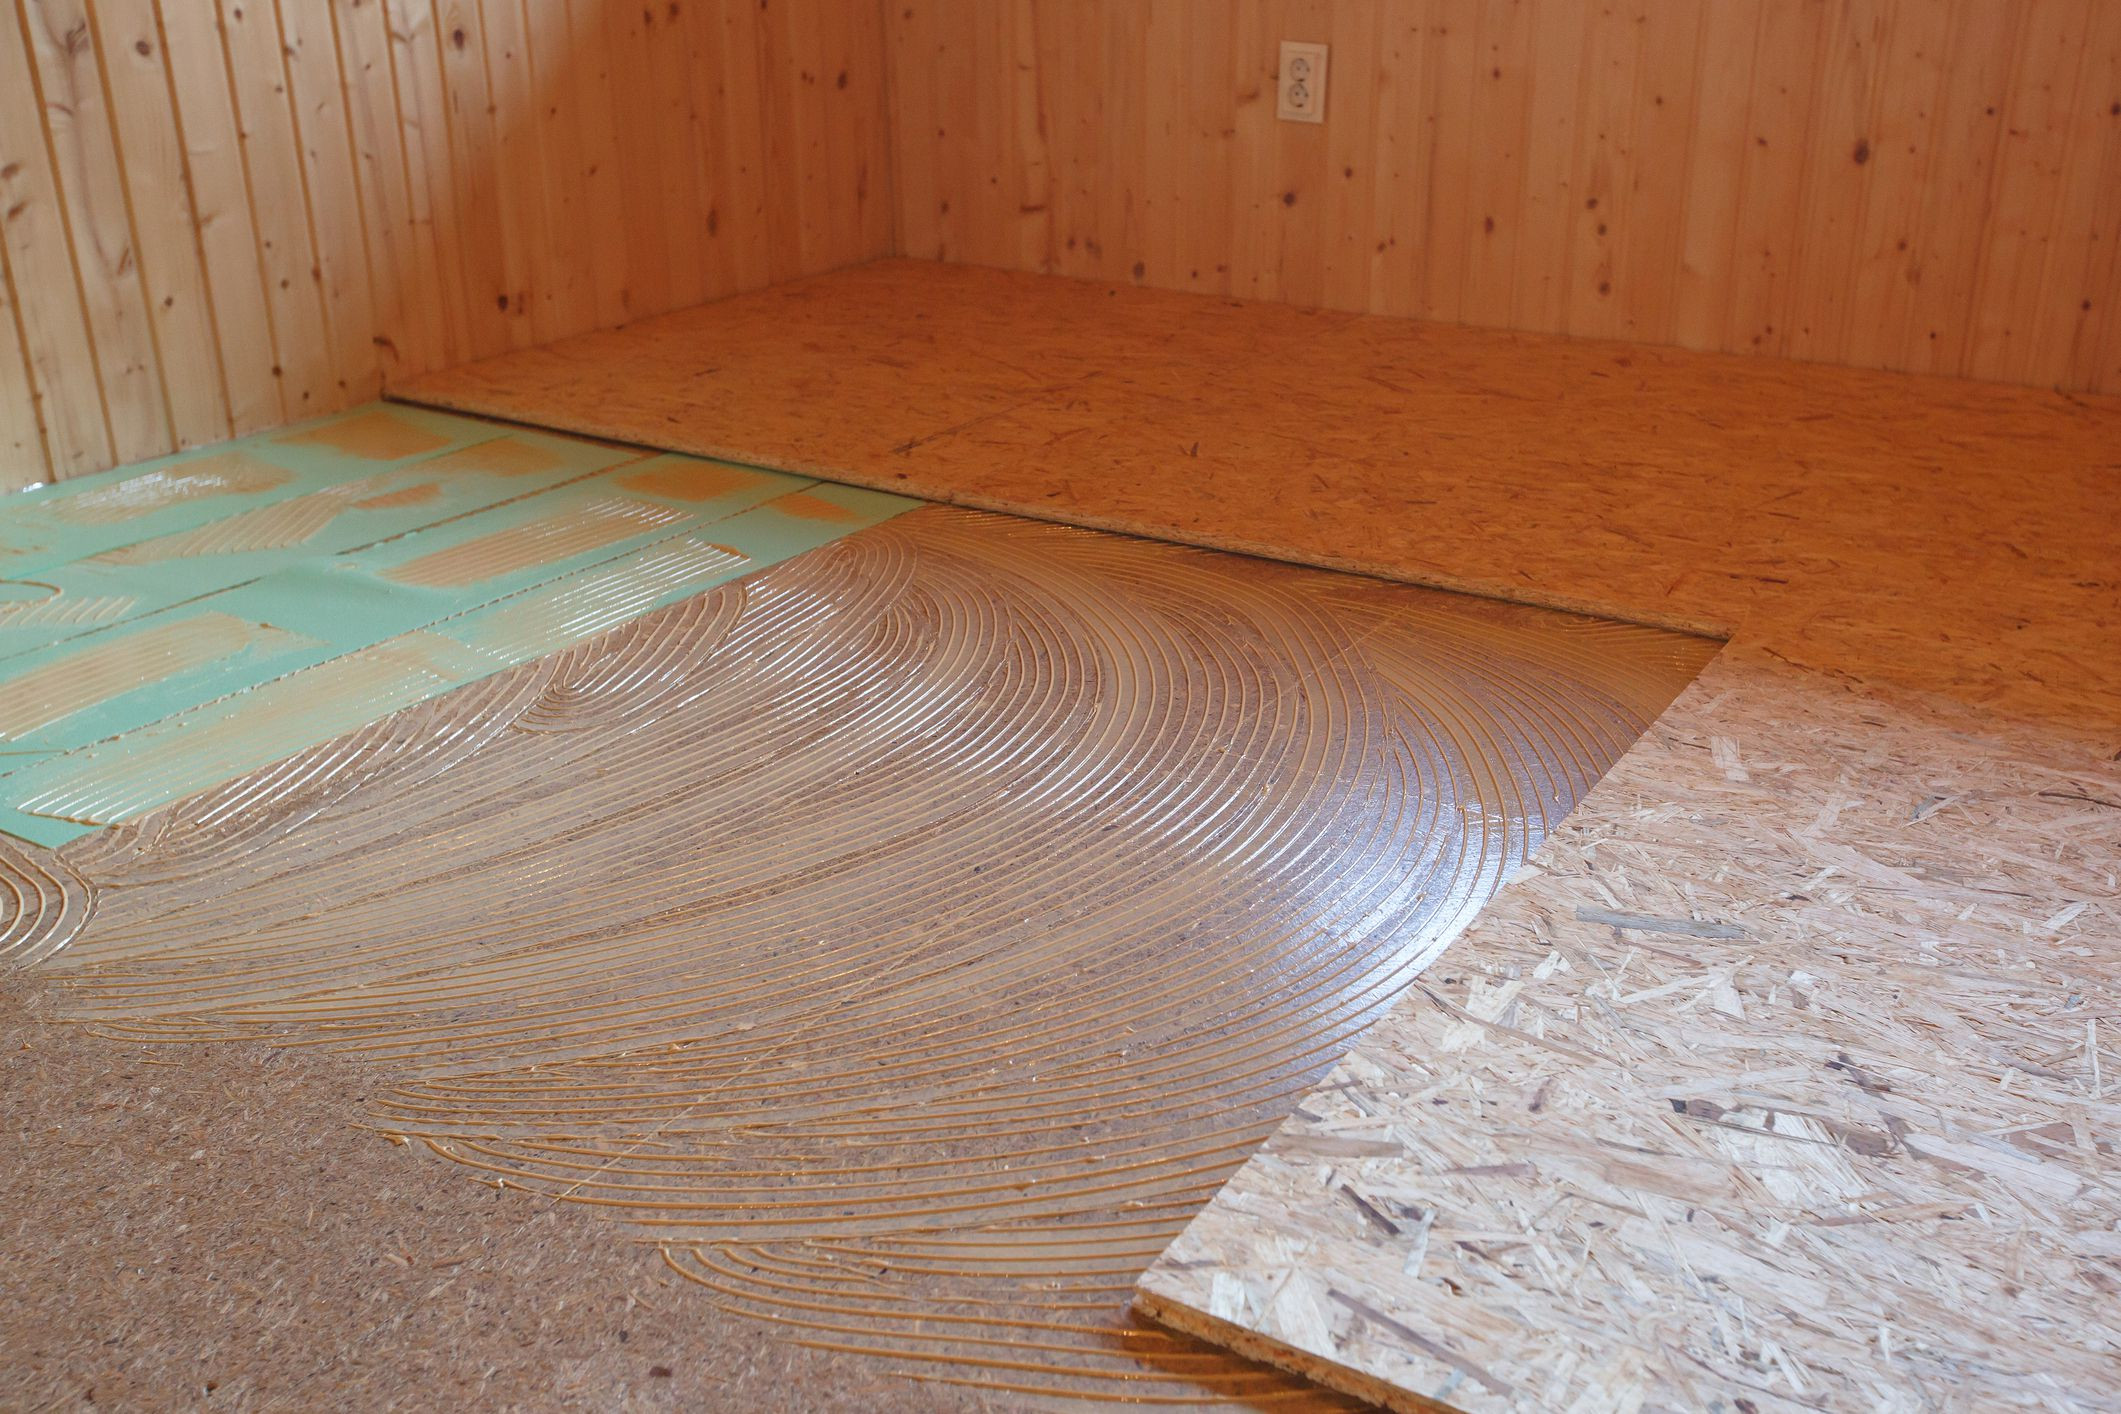 2nd quality hardwood flooring of types of subfloor materials in construction projects inside gettyimages 892047030 5af5f46fc064710036eebd22